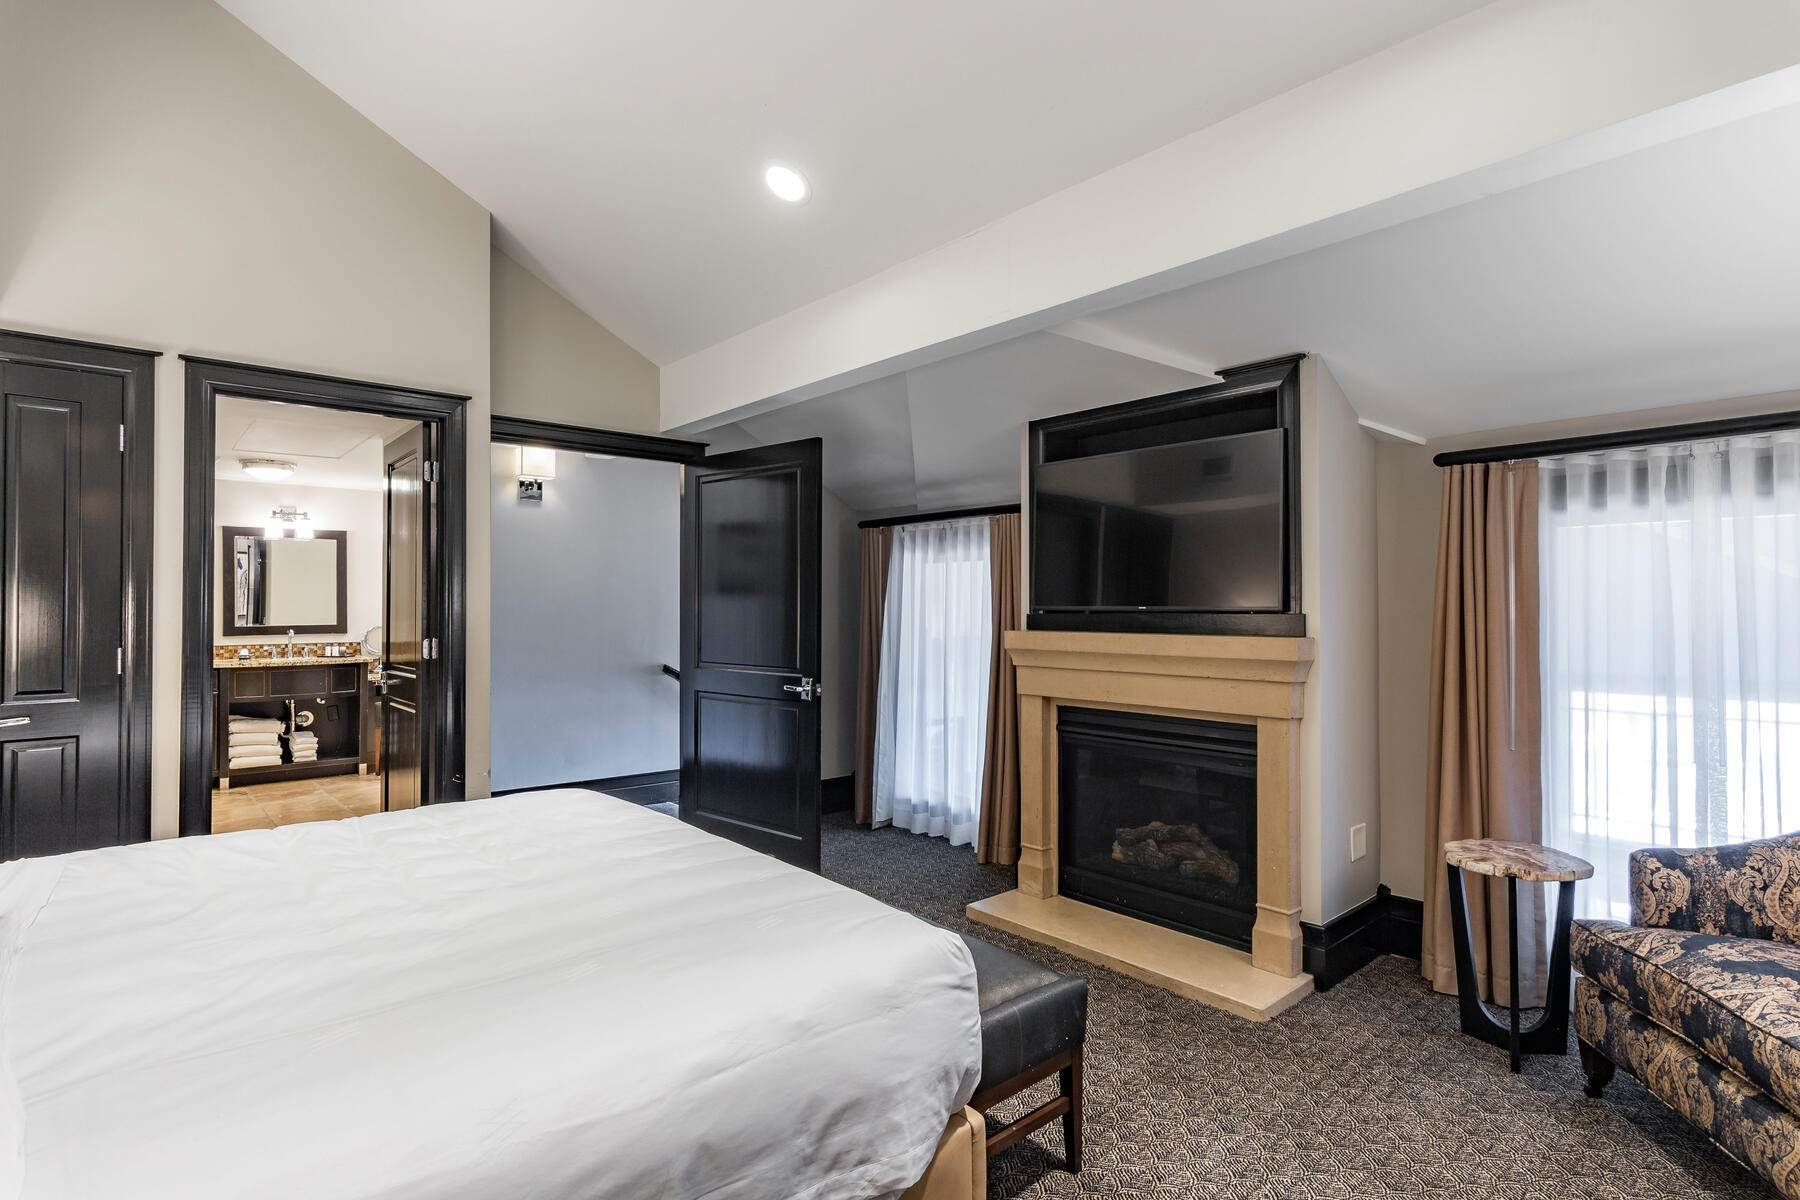 26. Condominiums for Sale at Only 4-Bedroom Available at Waldorf Astoria, Top Floor, Penthouse Unit 2100 W Frostwood Blvd, #7117 Park City, Utah 84098 United States